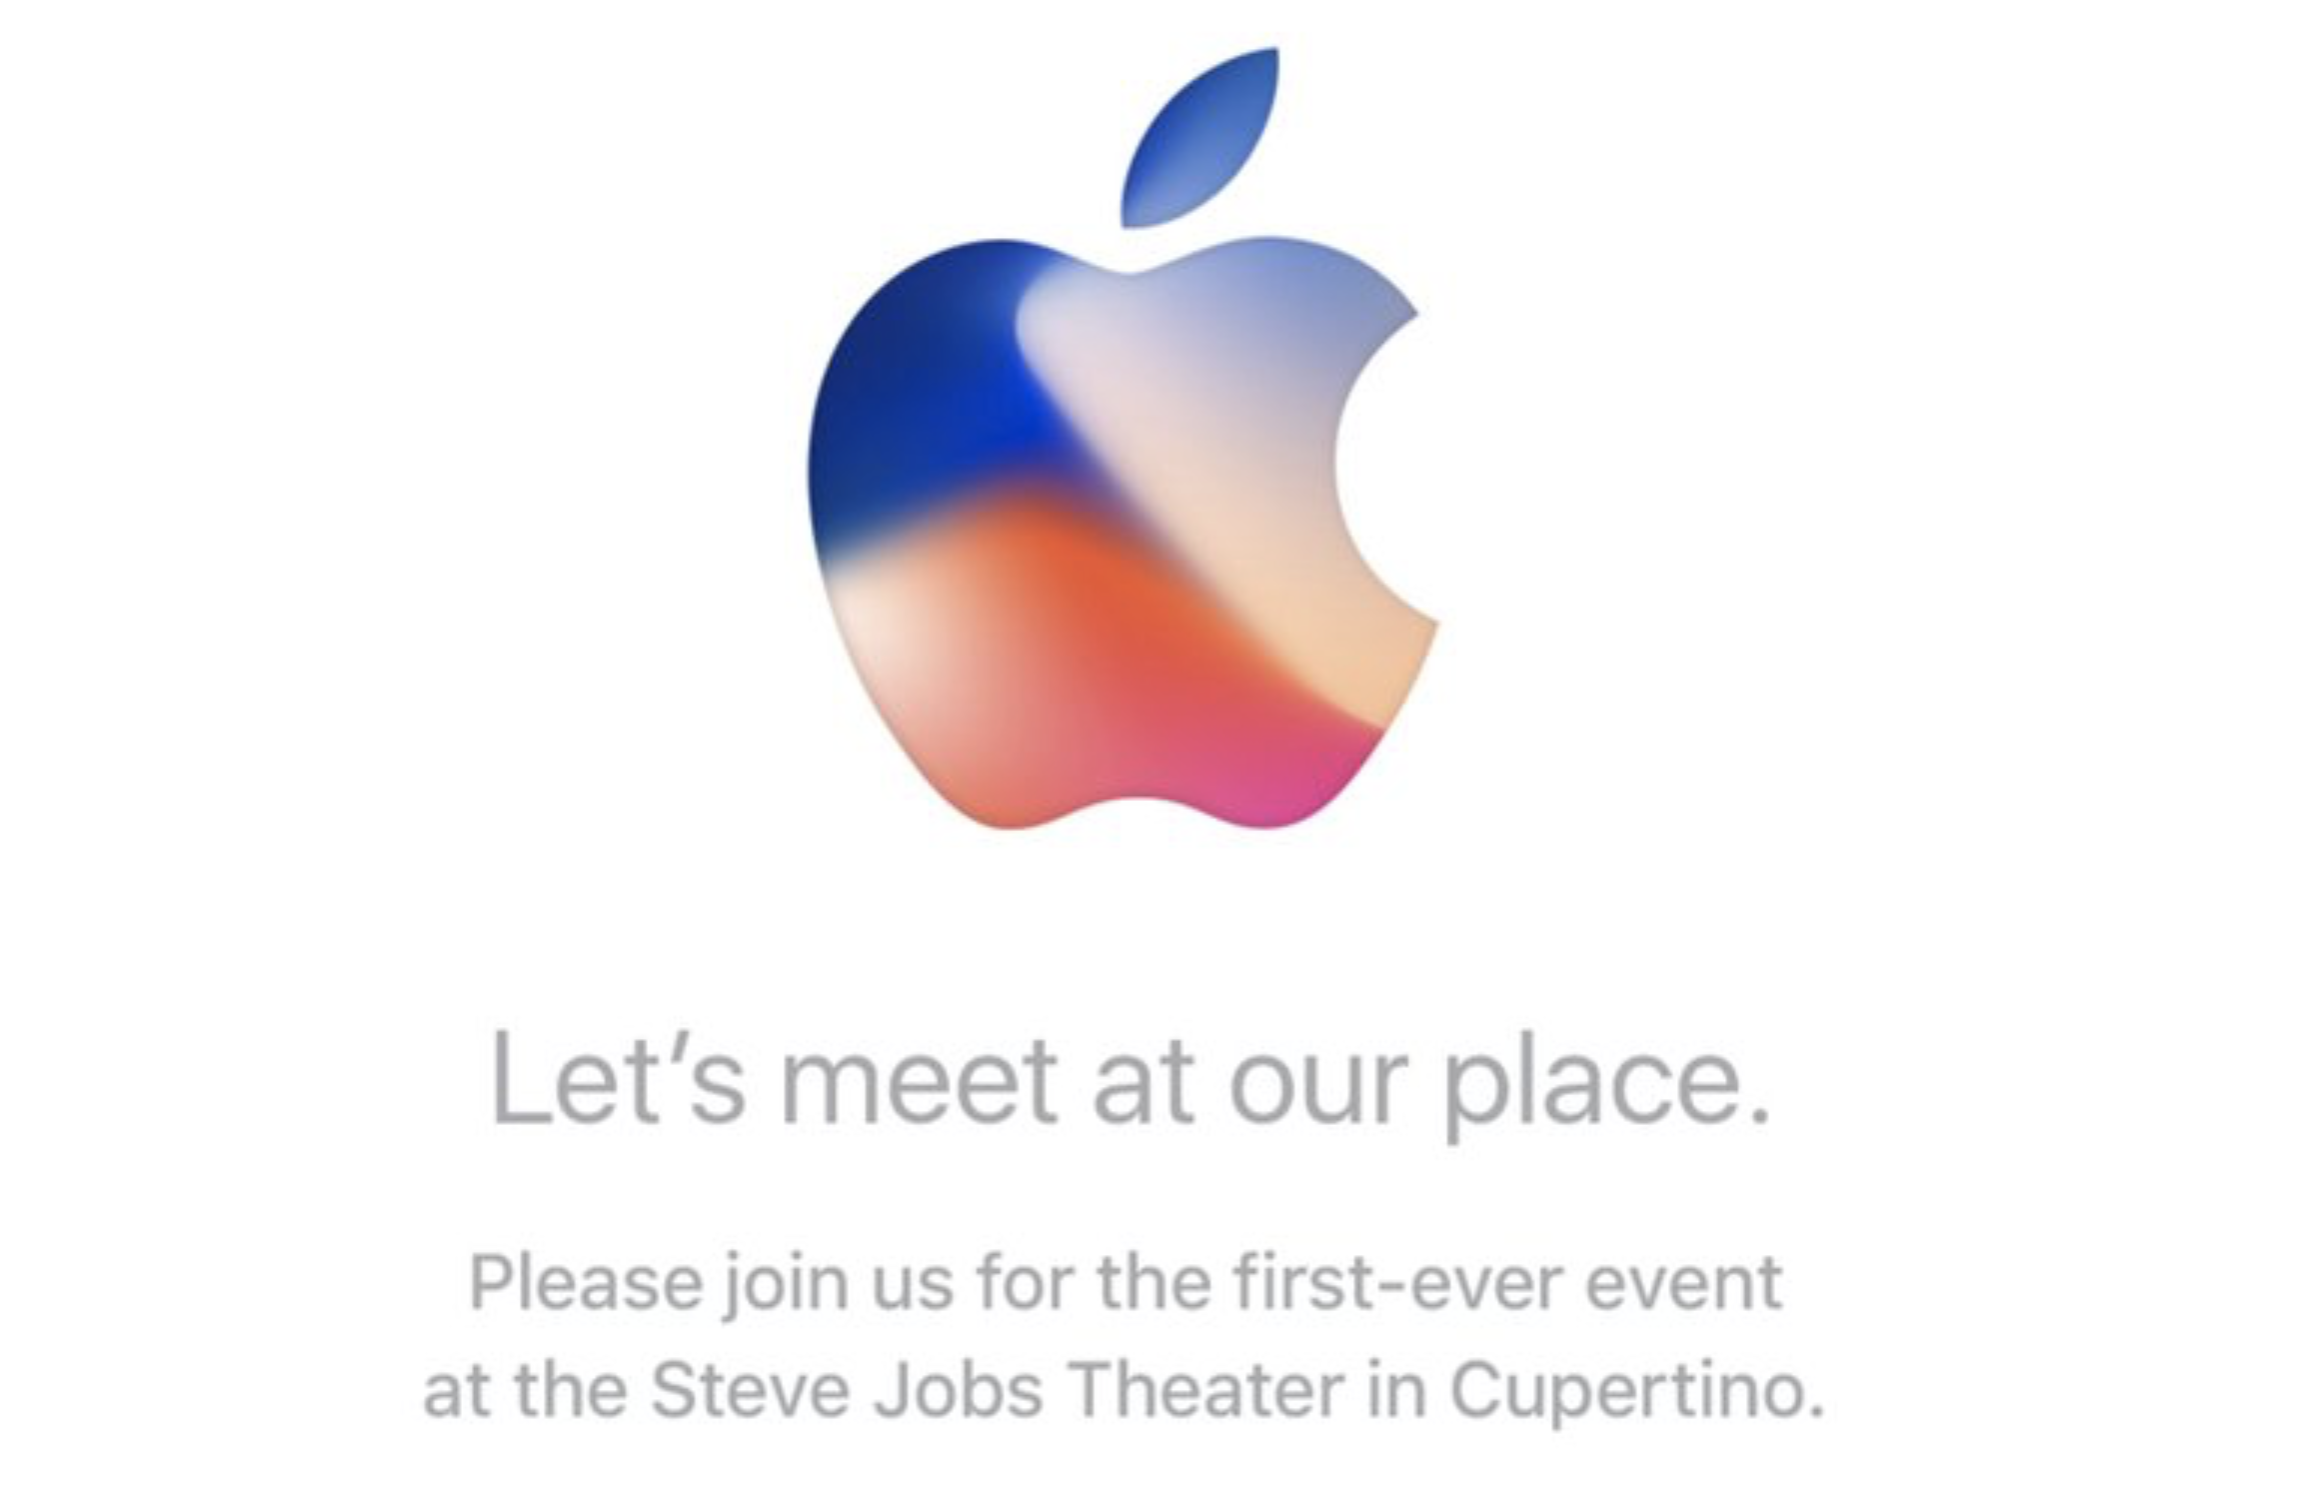 2017er Apple iPhone Event